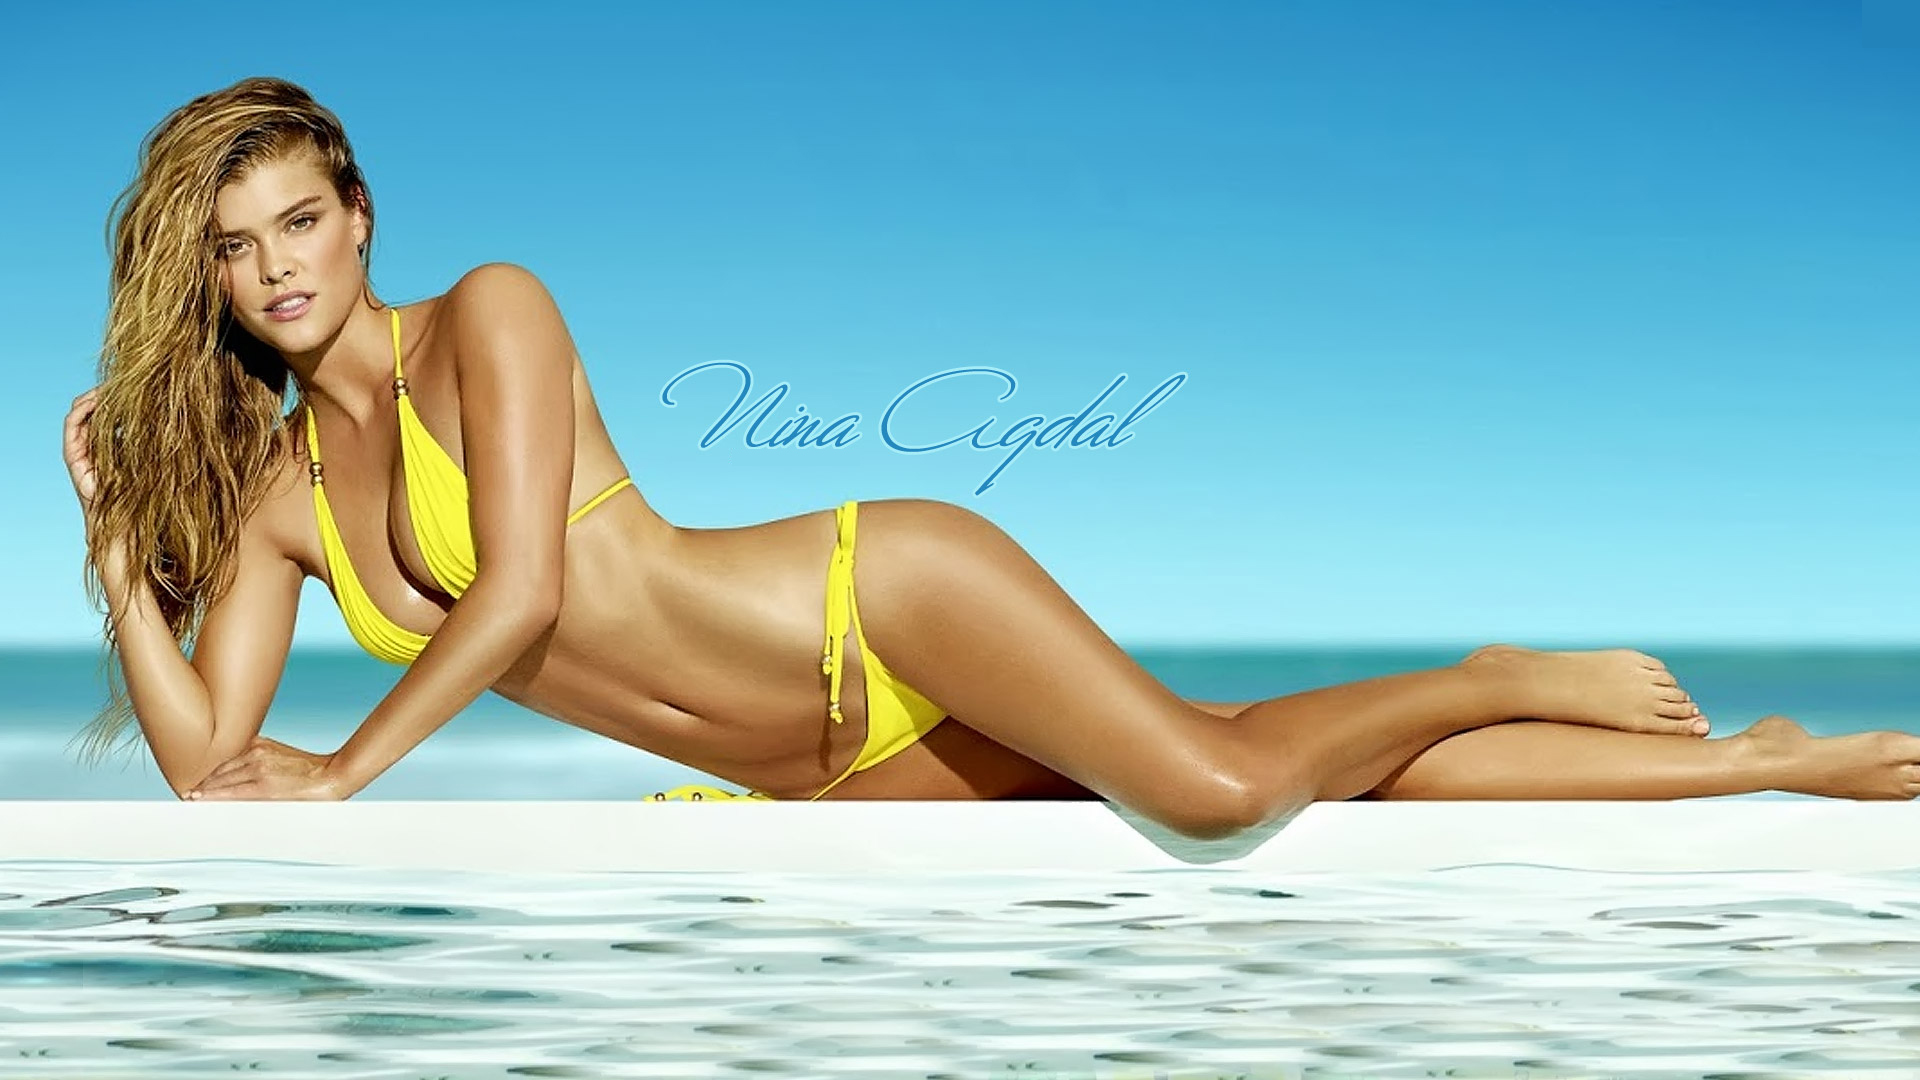 Nina Agdal Hot Bikini Wallpaper - Nina Agdal Hot Bikini Wallpaper